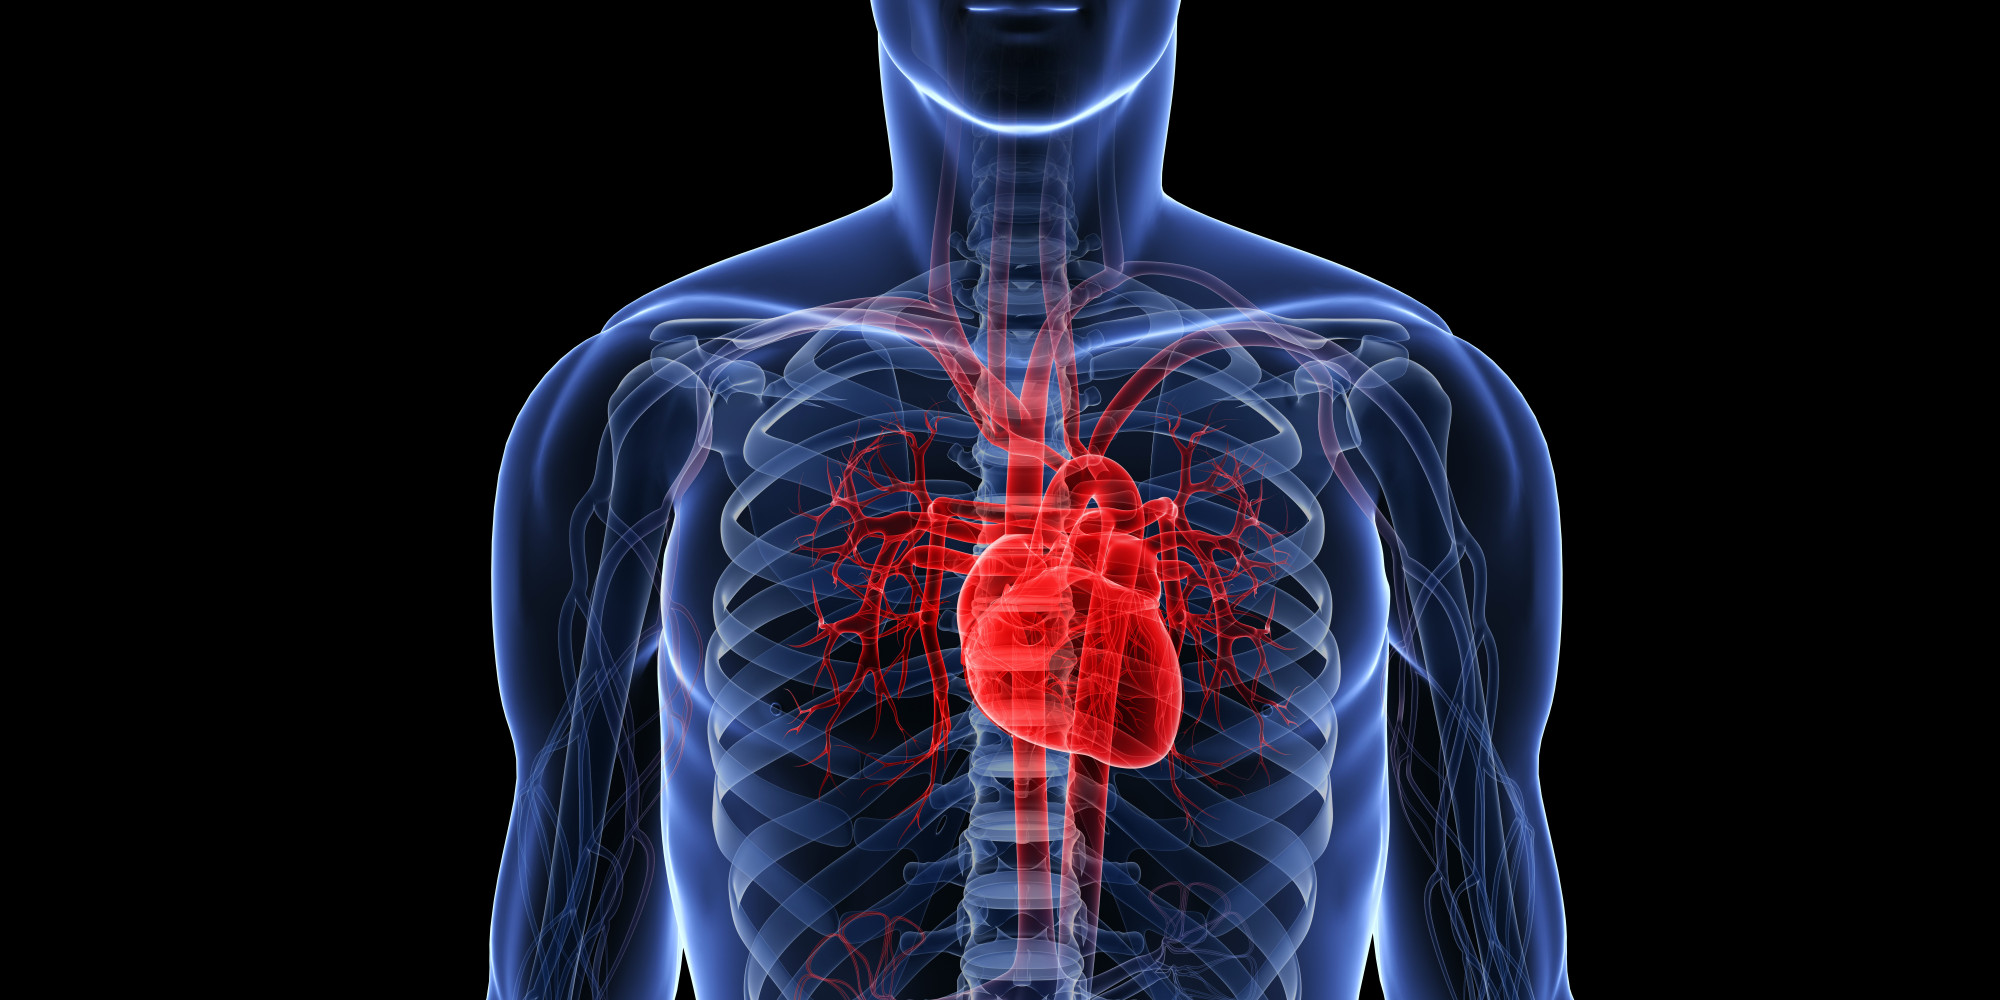 Cardiologist: 8 Foods You Should Quit Immediately